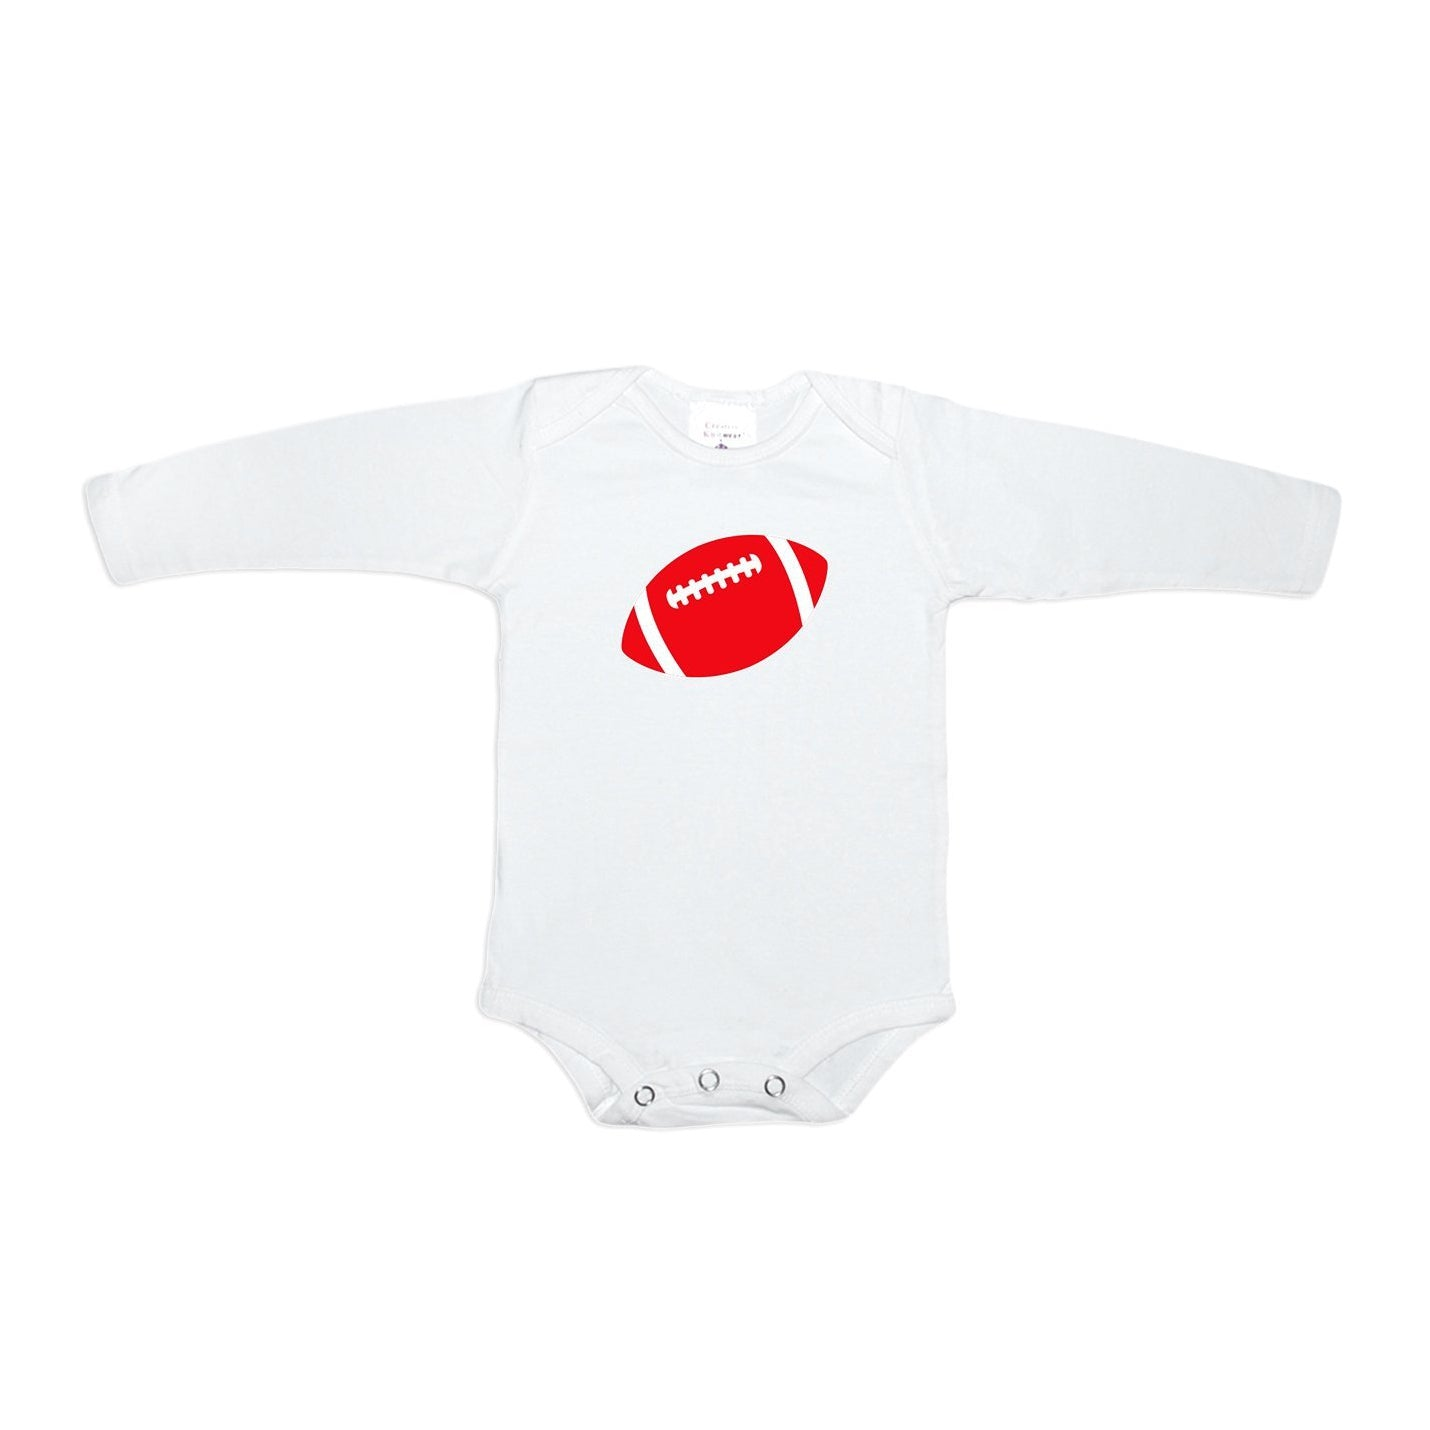 Ohio State University Long Sleeve Onesie